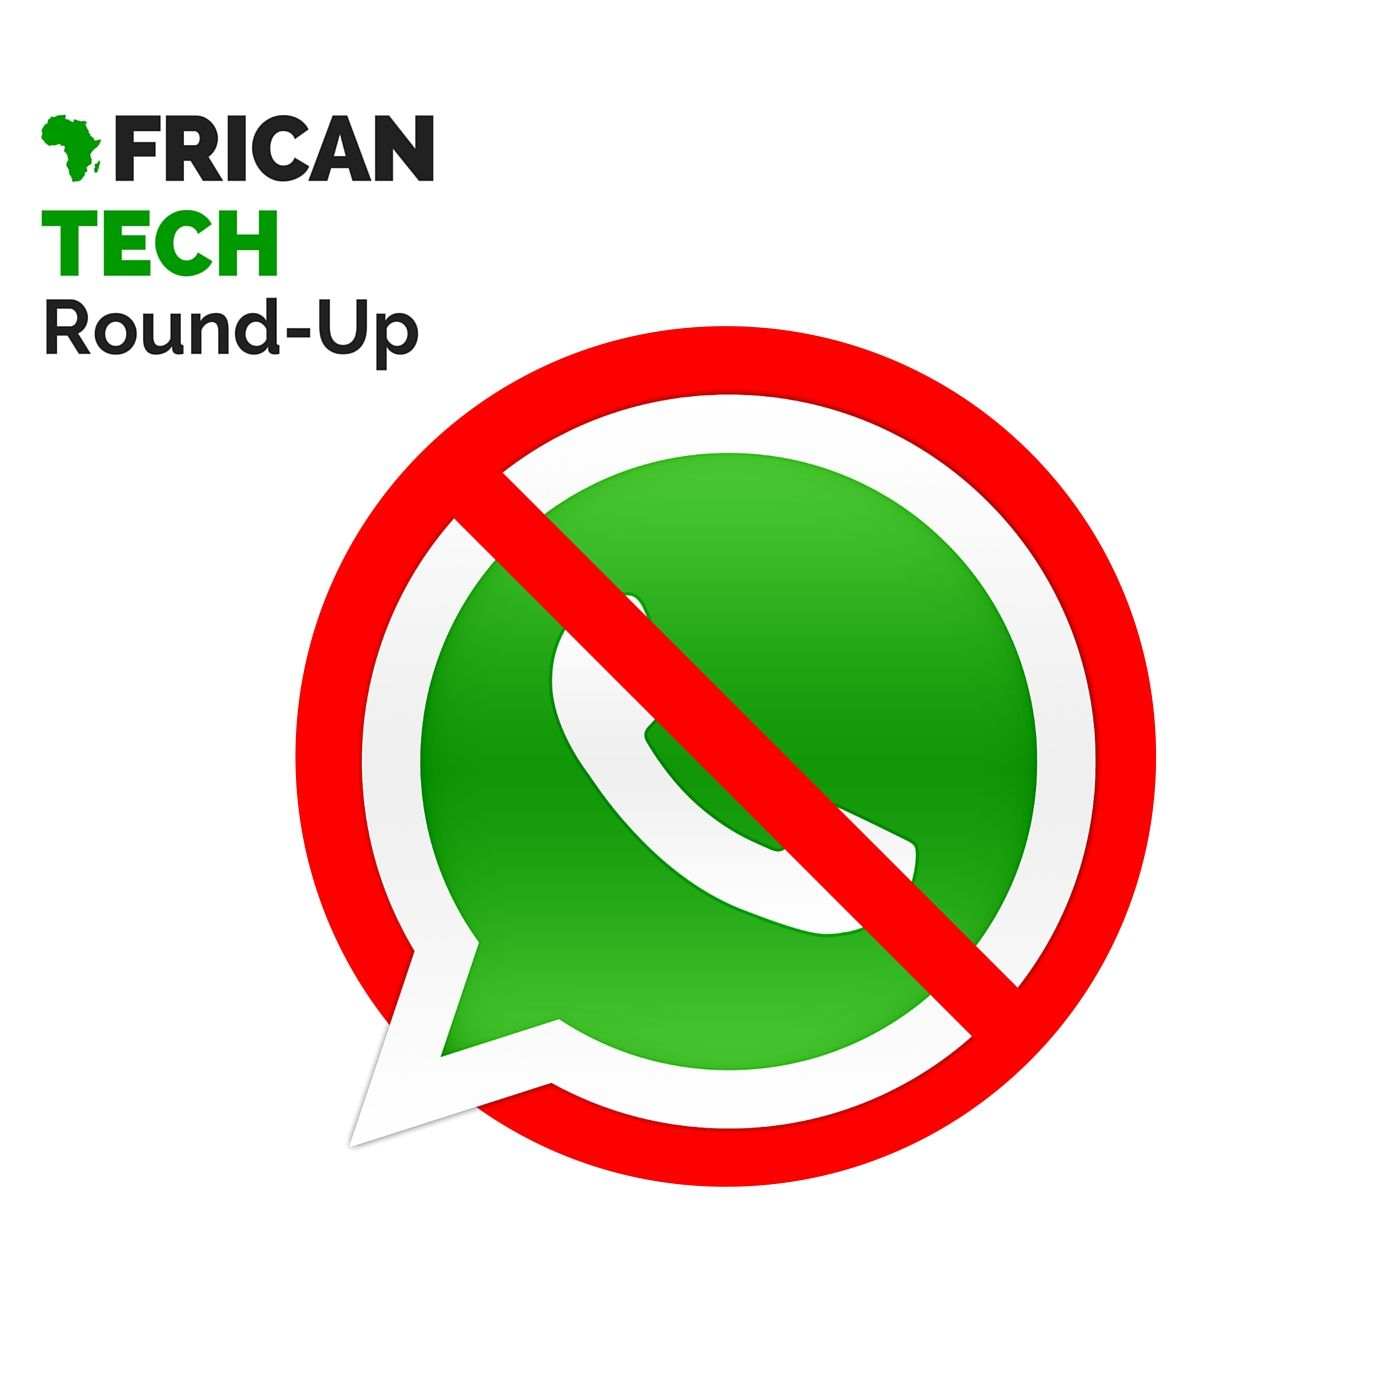 Mobile Service Providers In Africa Call For Regulation Of OTT Services Such As WhatsApp